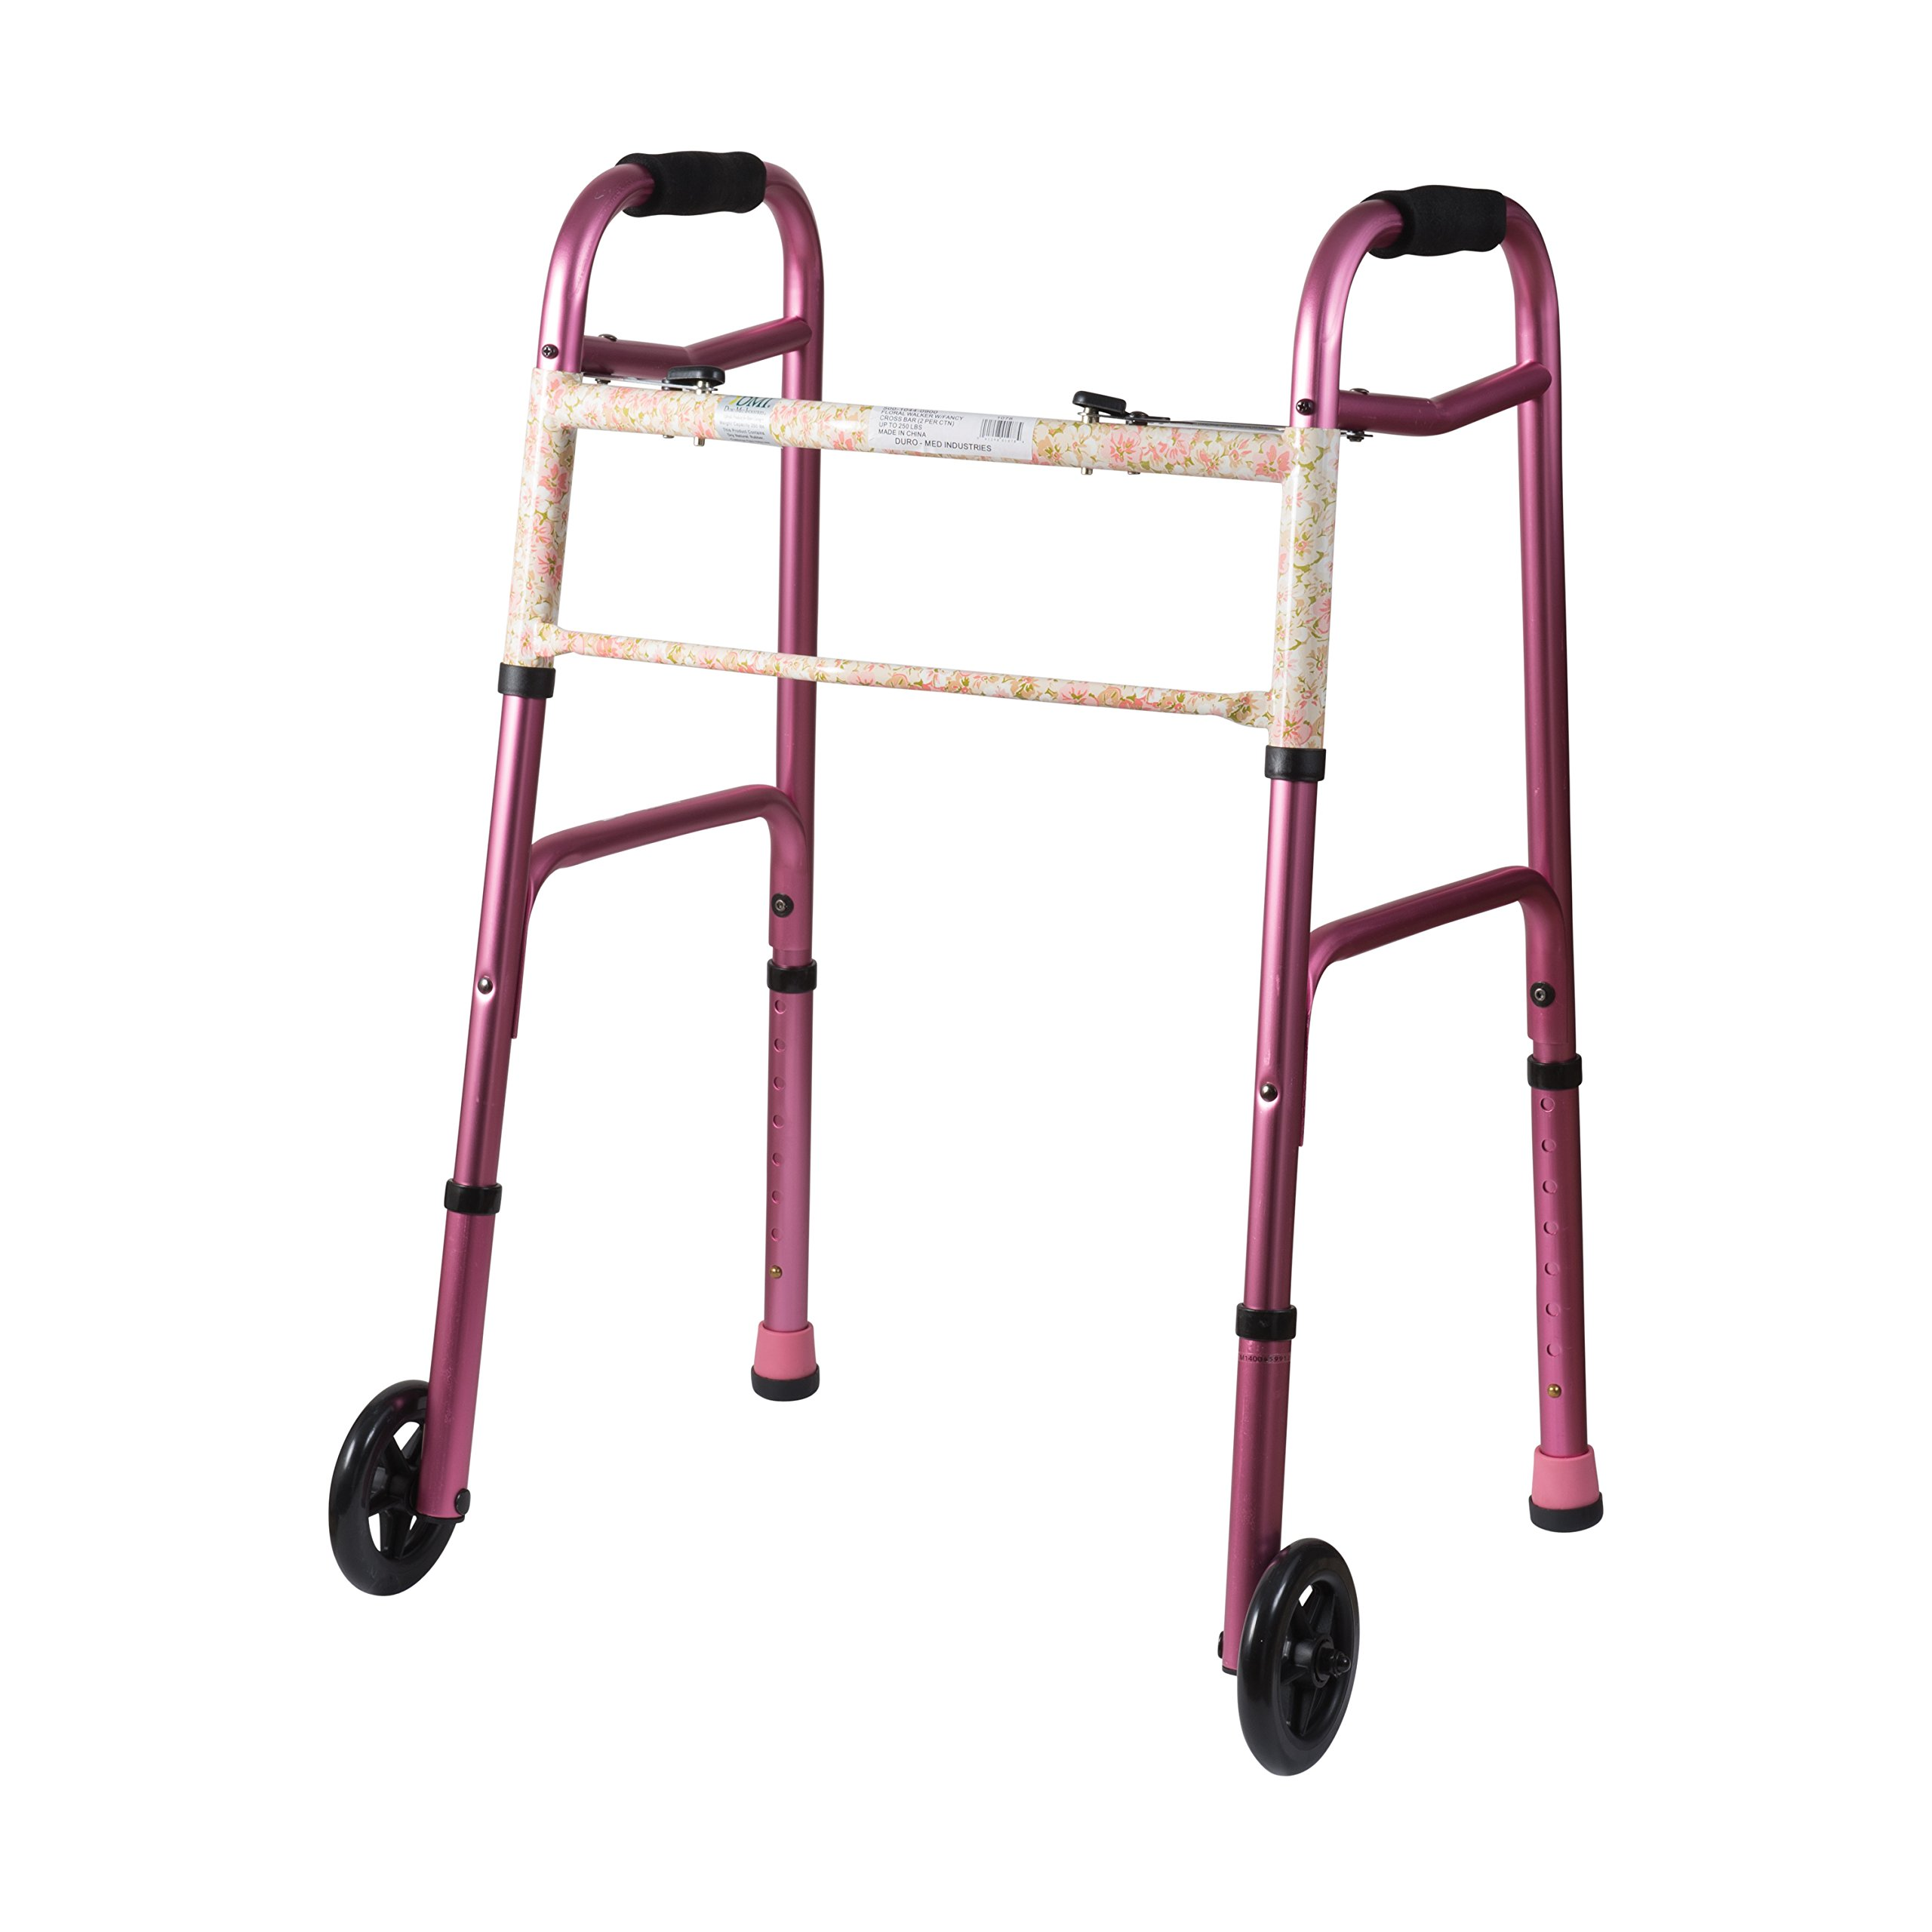 DMI Lightweight Aluminum Folding Walker with Easy Two Button Release, 5 Inch Wheels, Adjustable Height, Pink Floral by Duro-Med